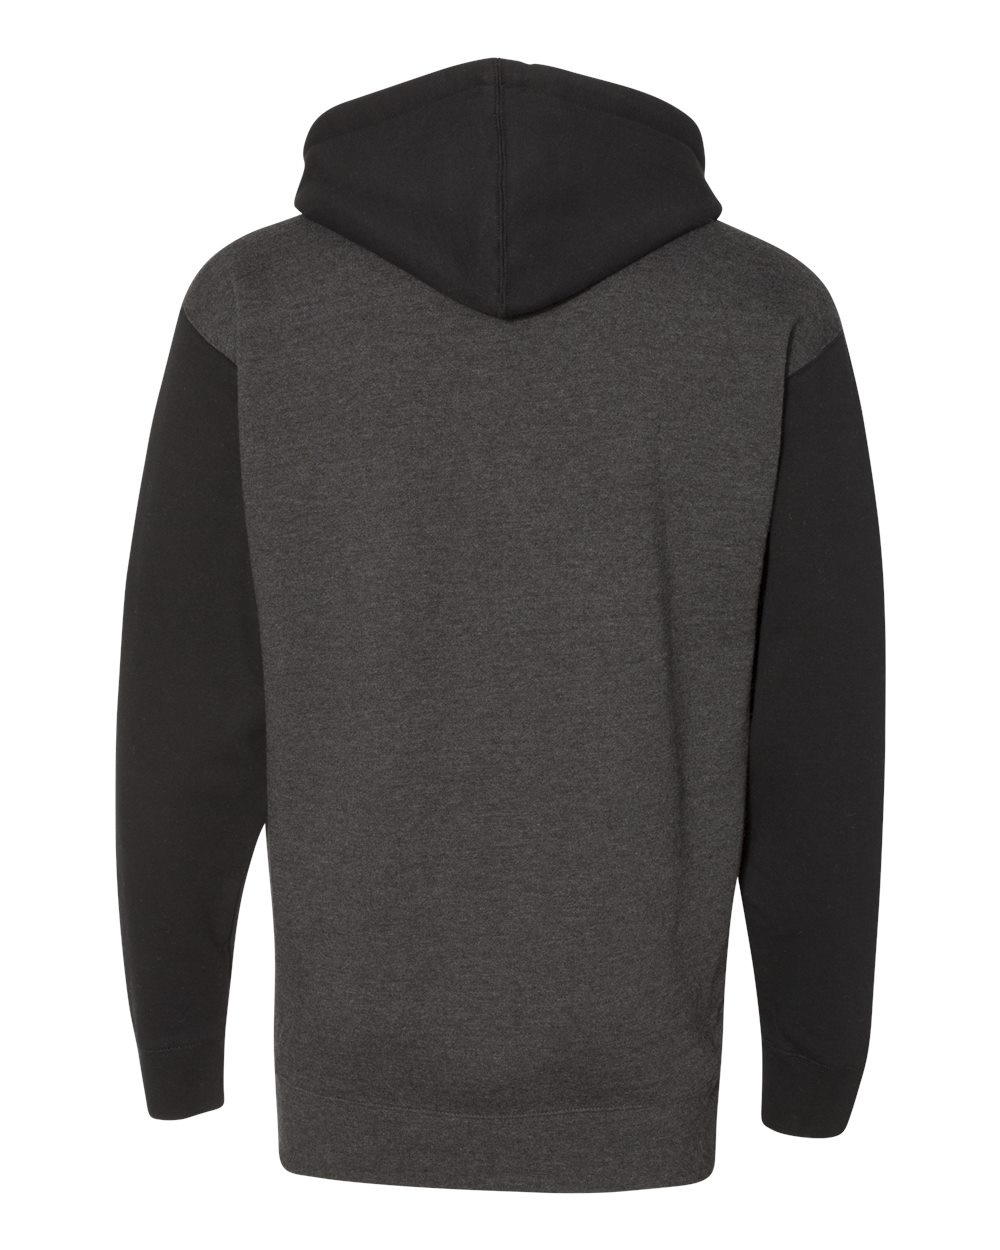 Independent-Trading-Co-Mens-Hooded-Pullover-Sweatshirt-IND4000-up-to-3XL miniature 31